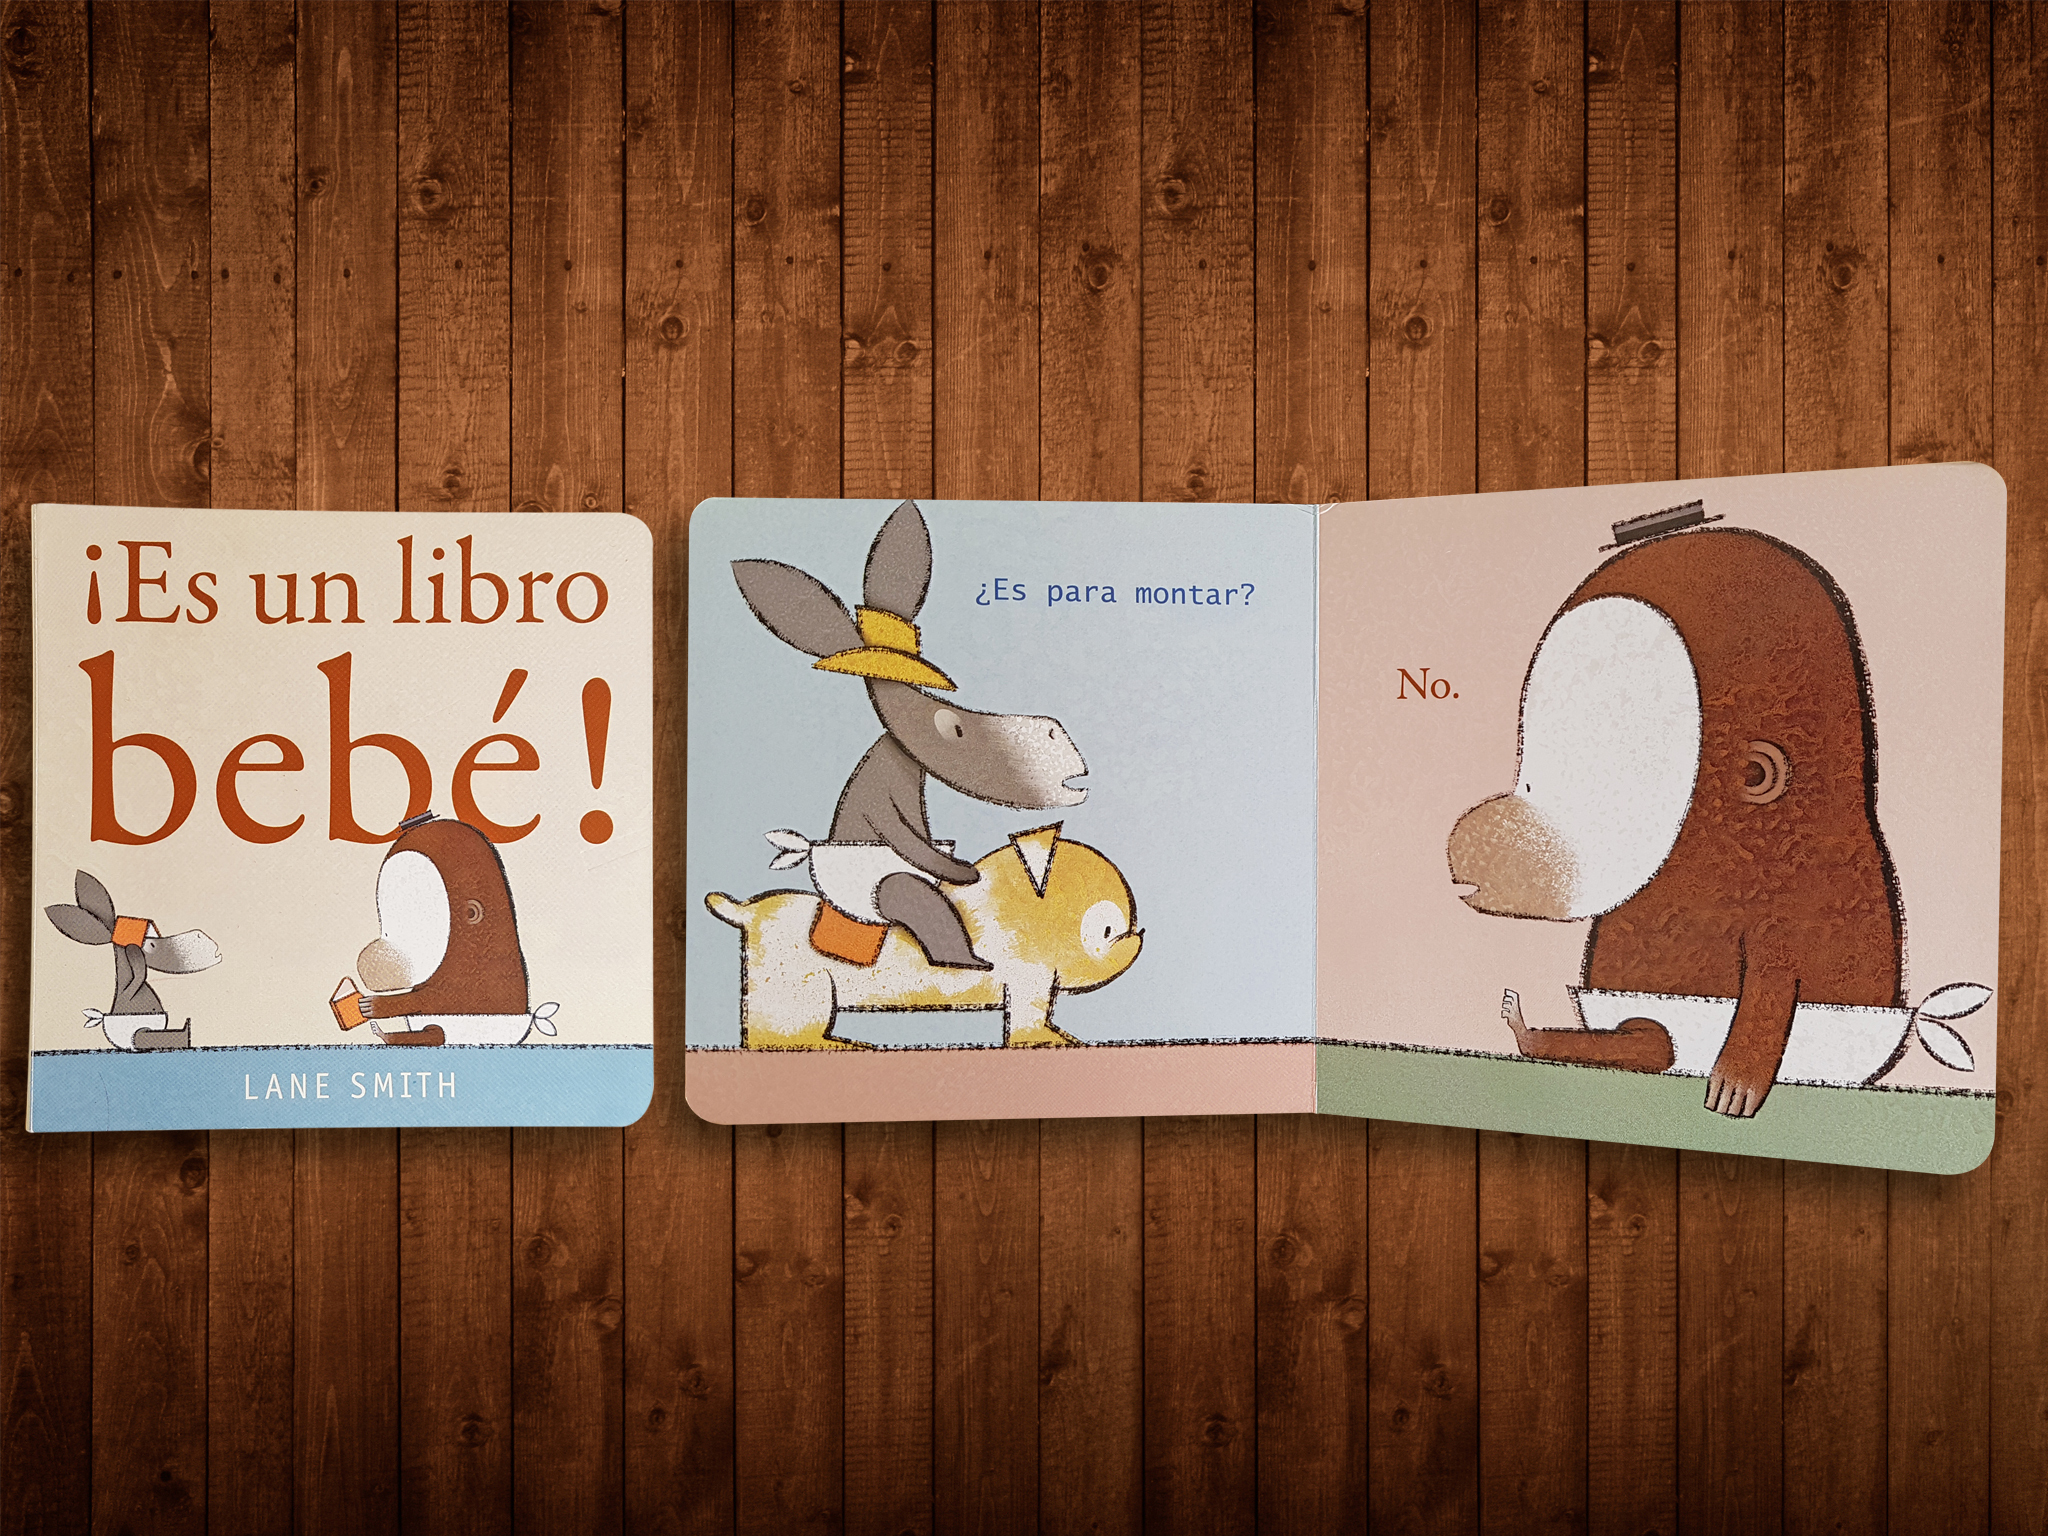 ¡Es un libro bebé!, de Lane Smith